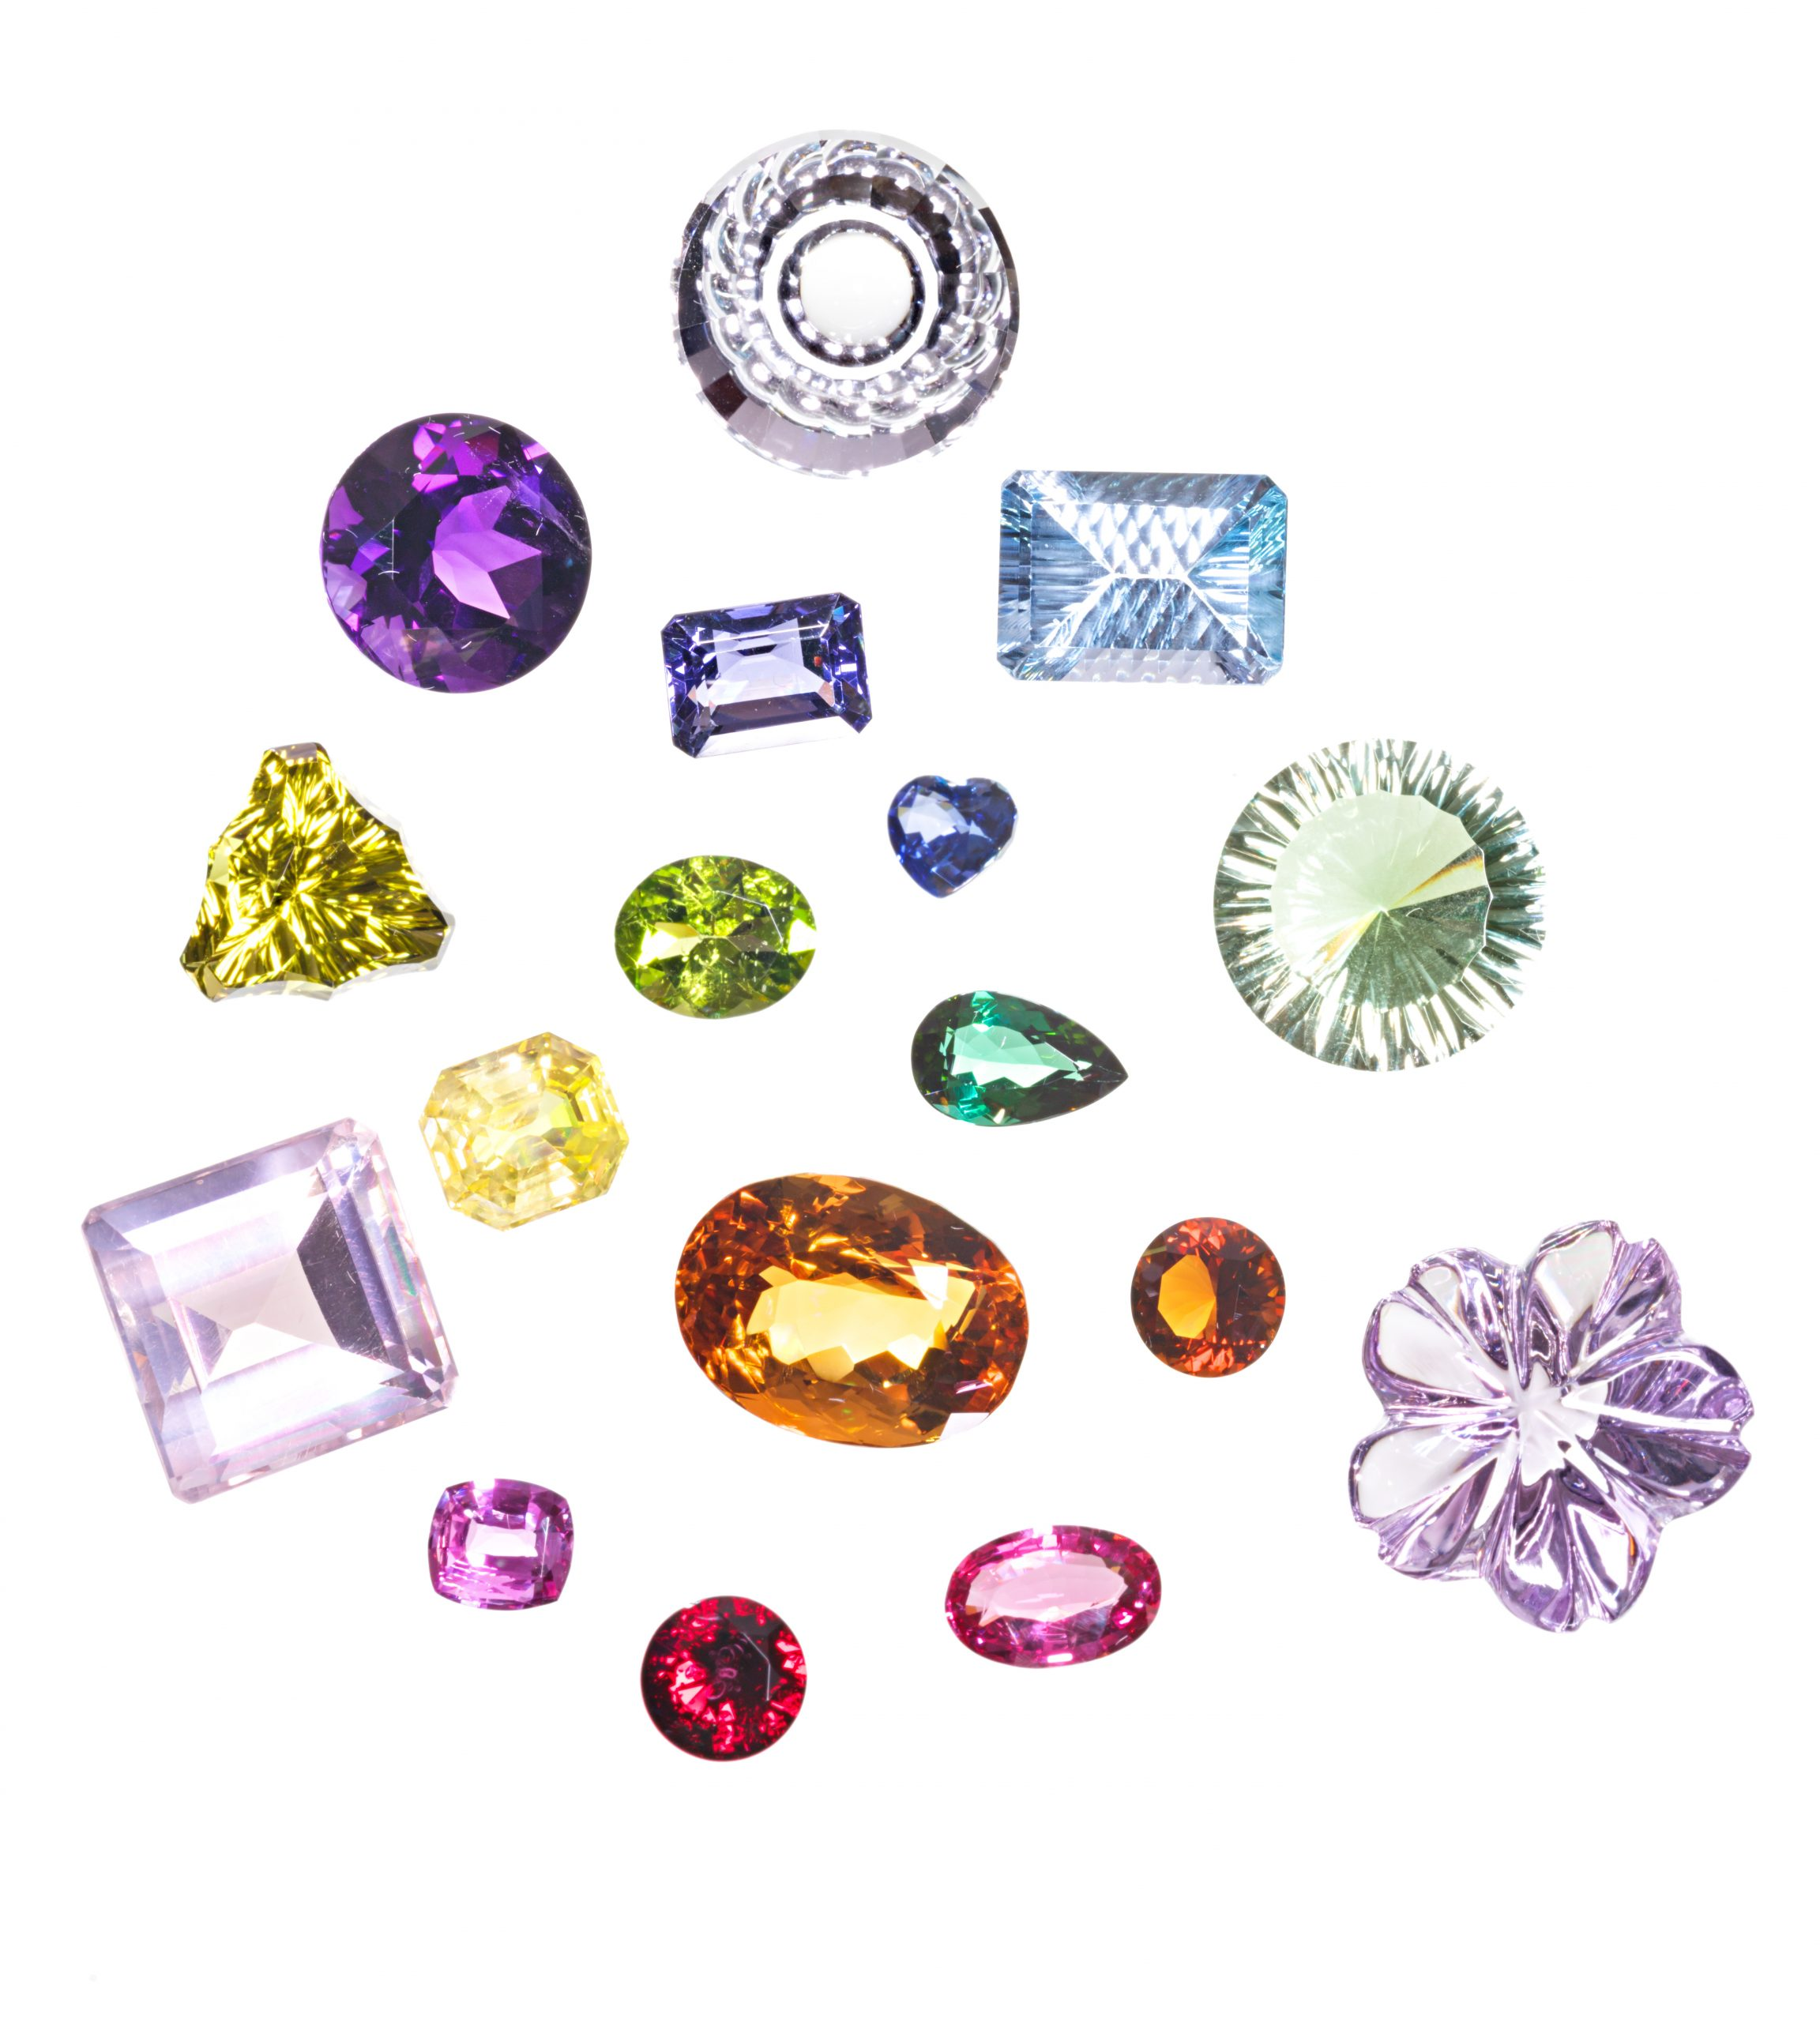 Giant Gem Extravaganza – Dec. 15th to 21st